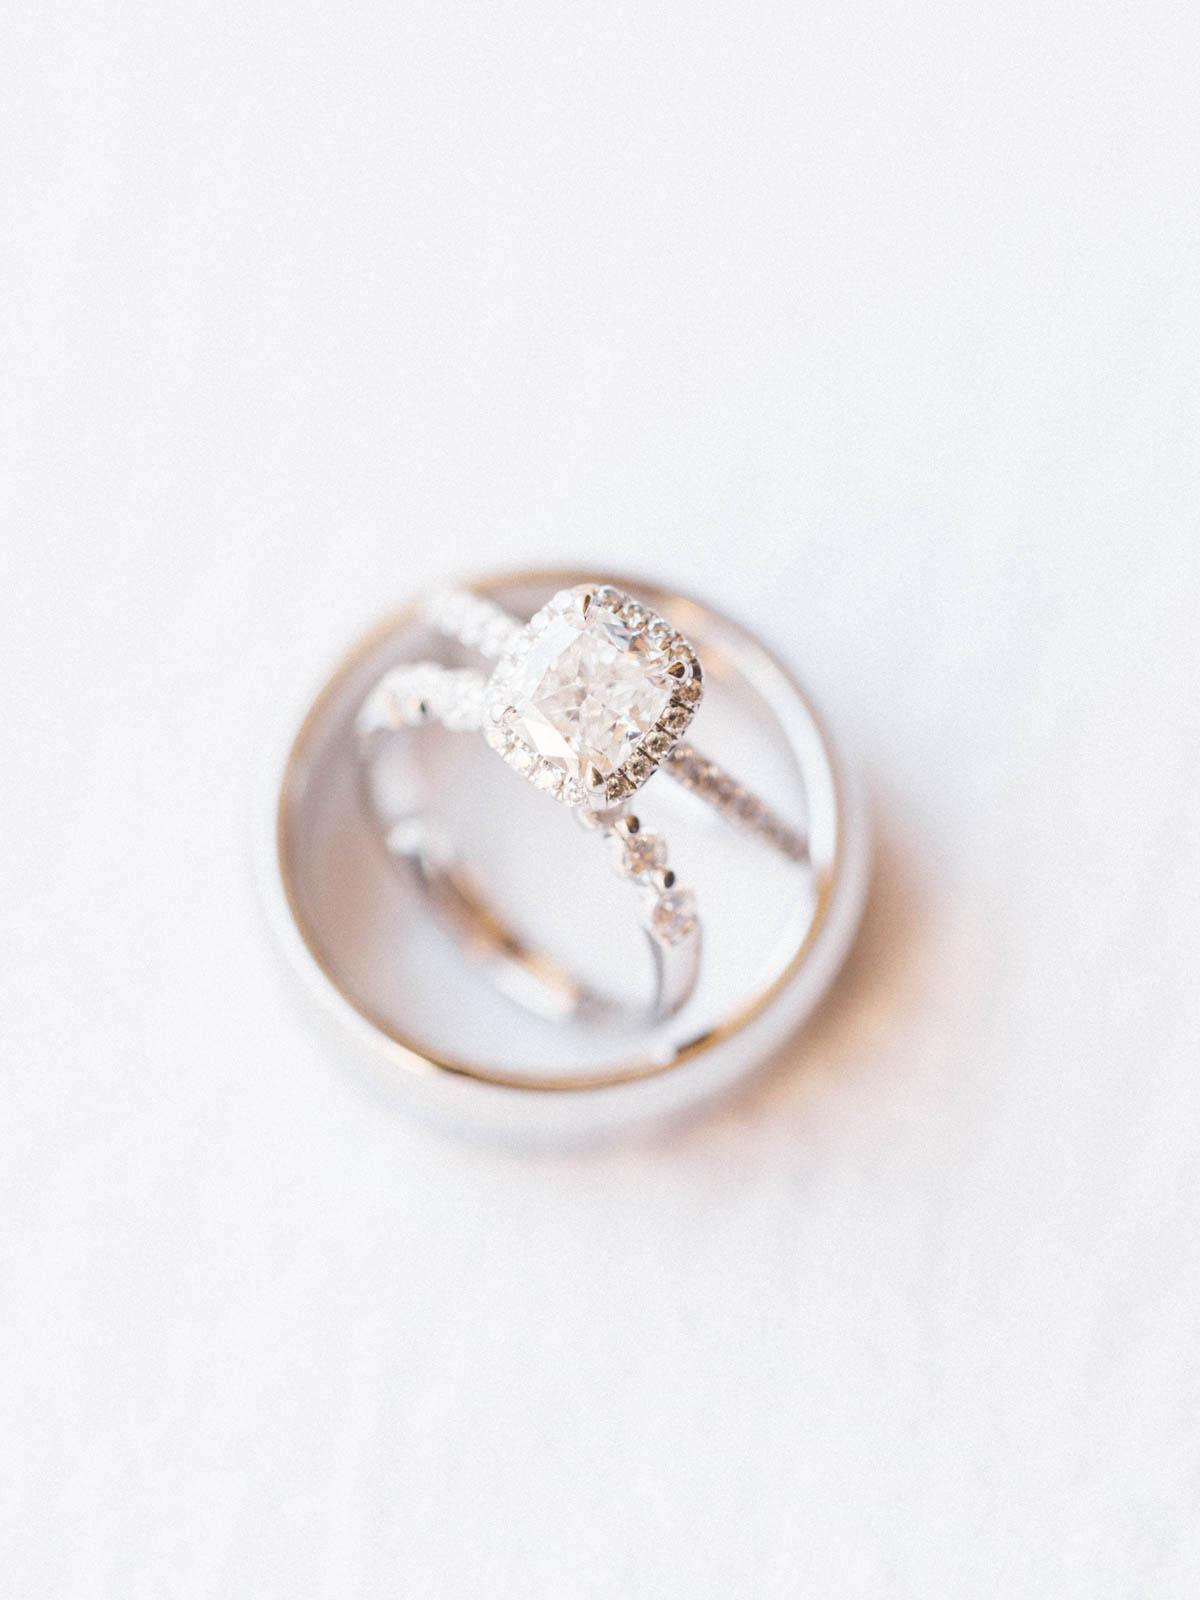 Ring shot captured by Tucson Wedding Photographers Betsy & John